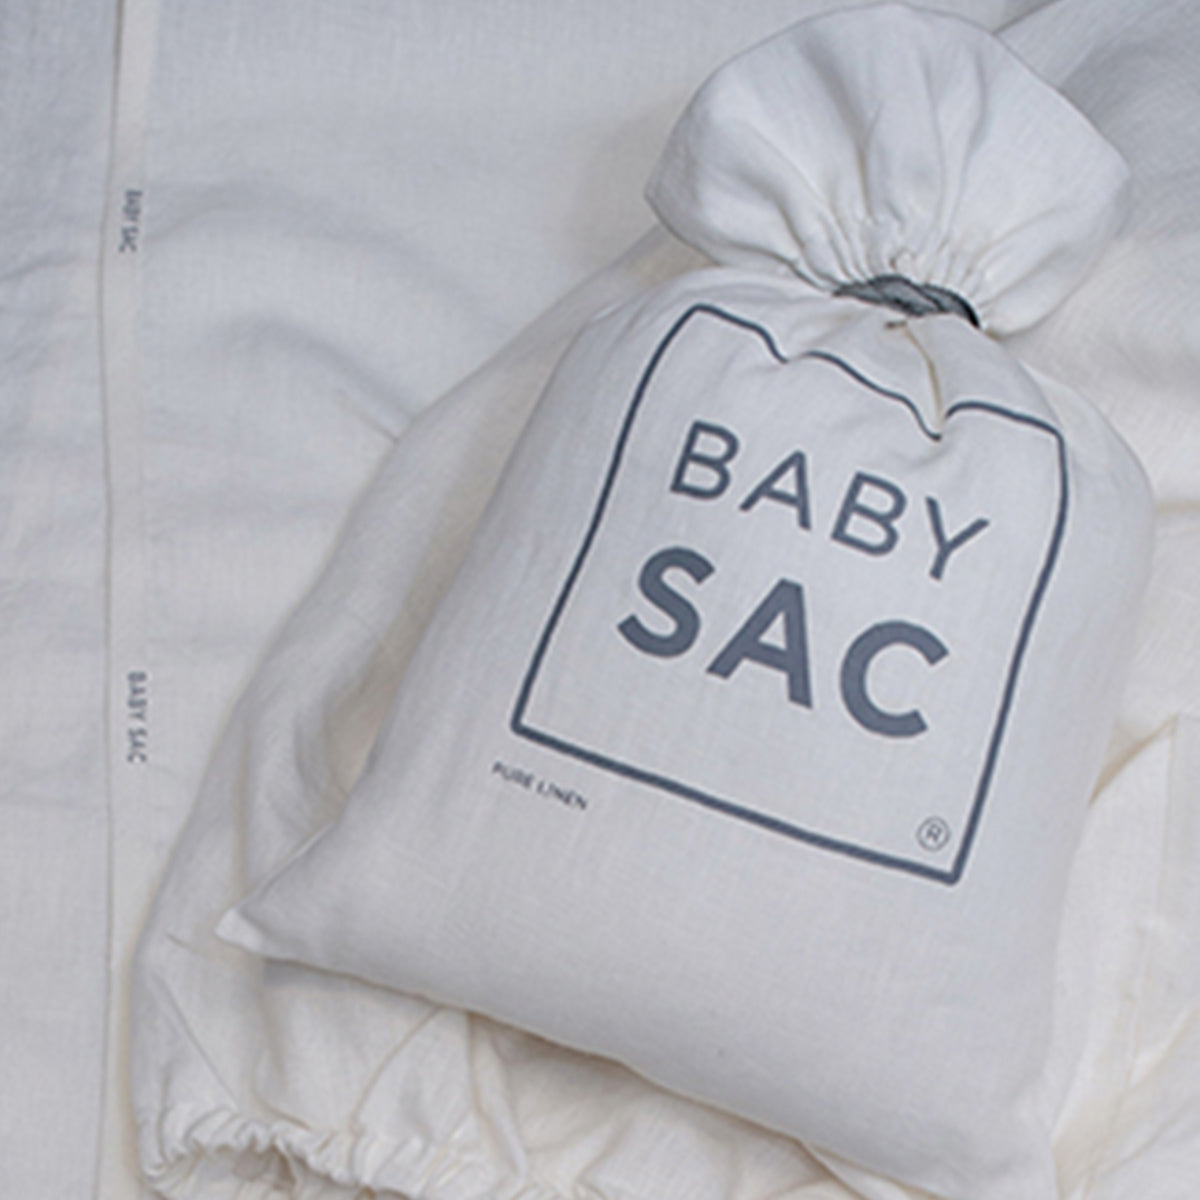 Baby Sac - Bassinet - White